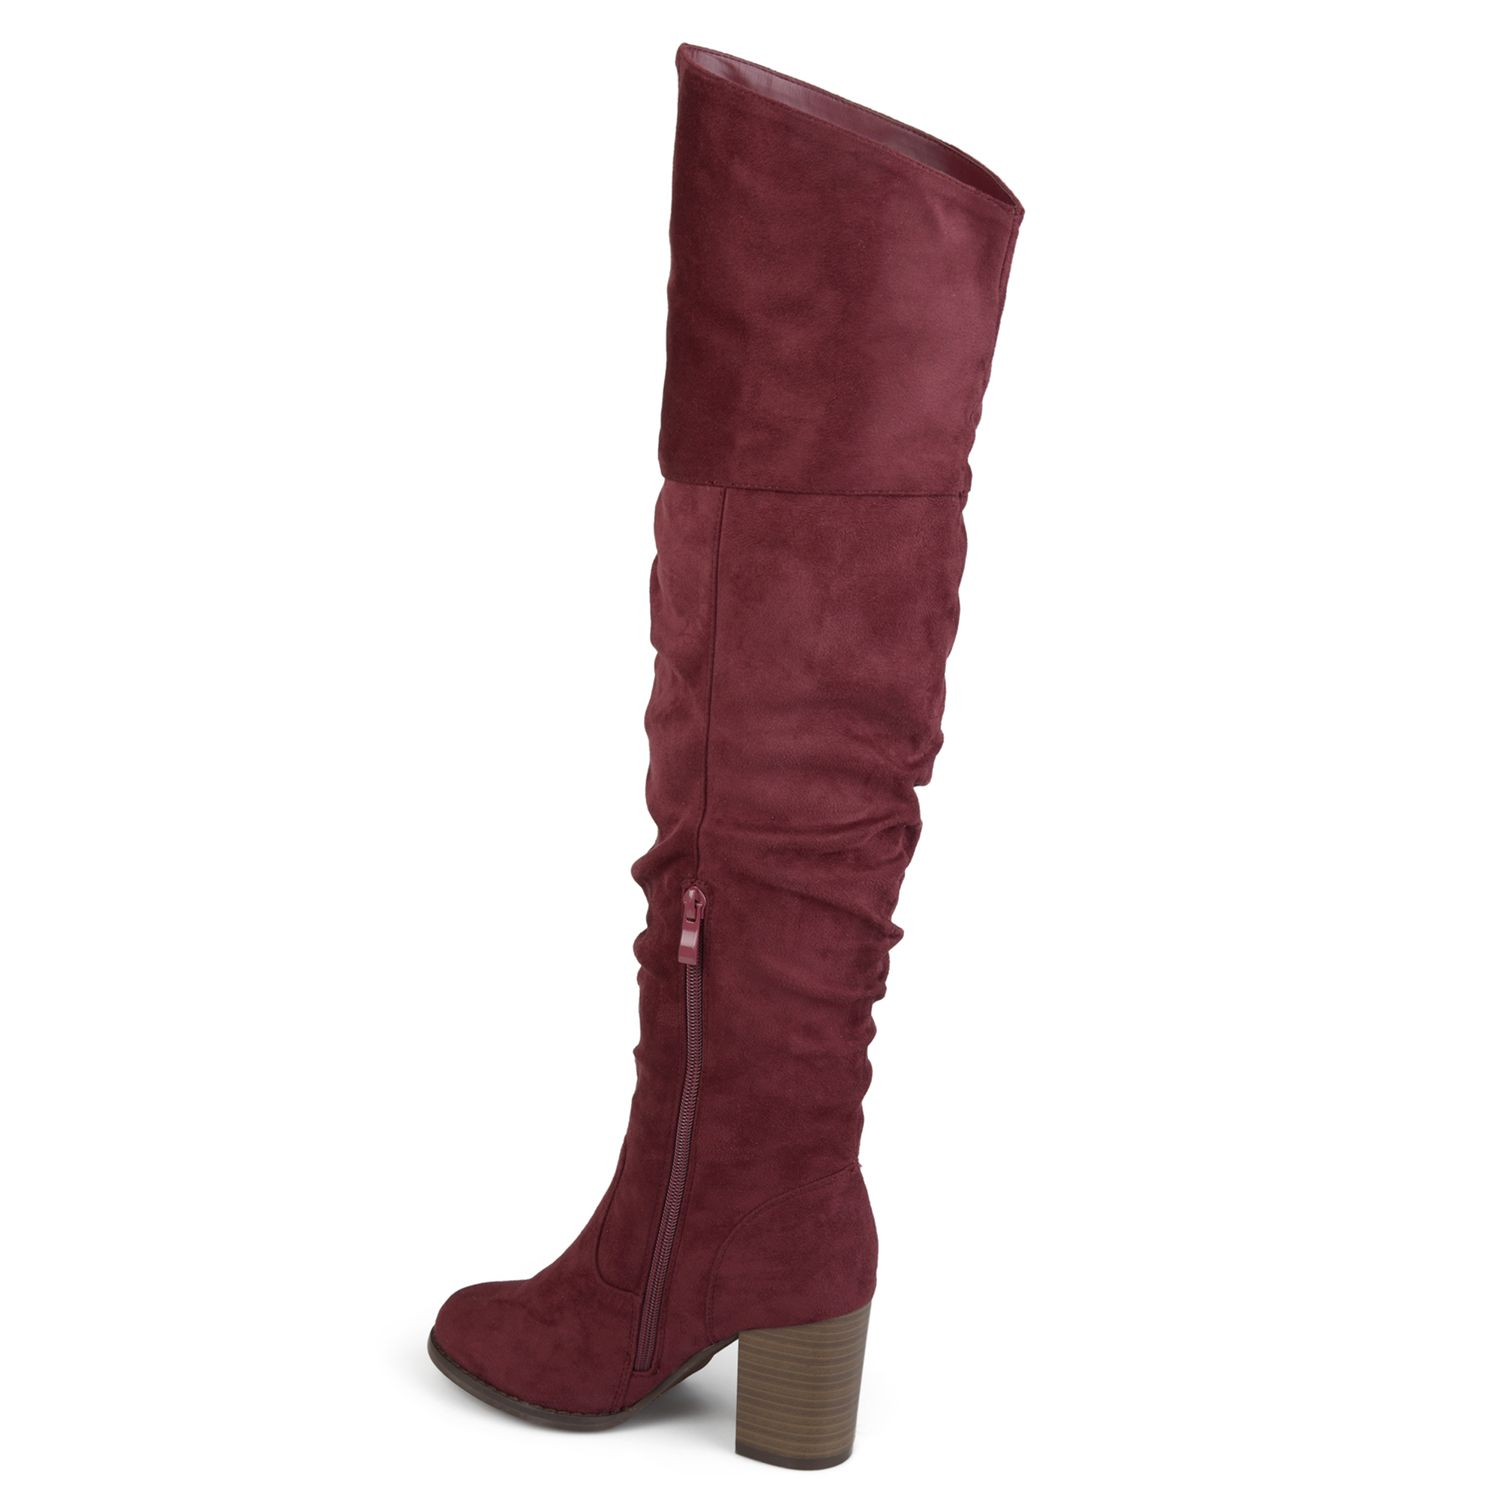 2187040e5931 Womens Over-the-Knee Boots - Shoes